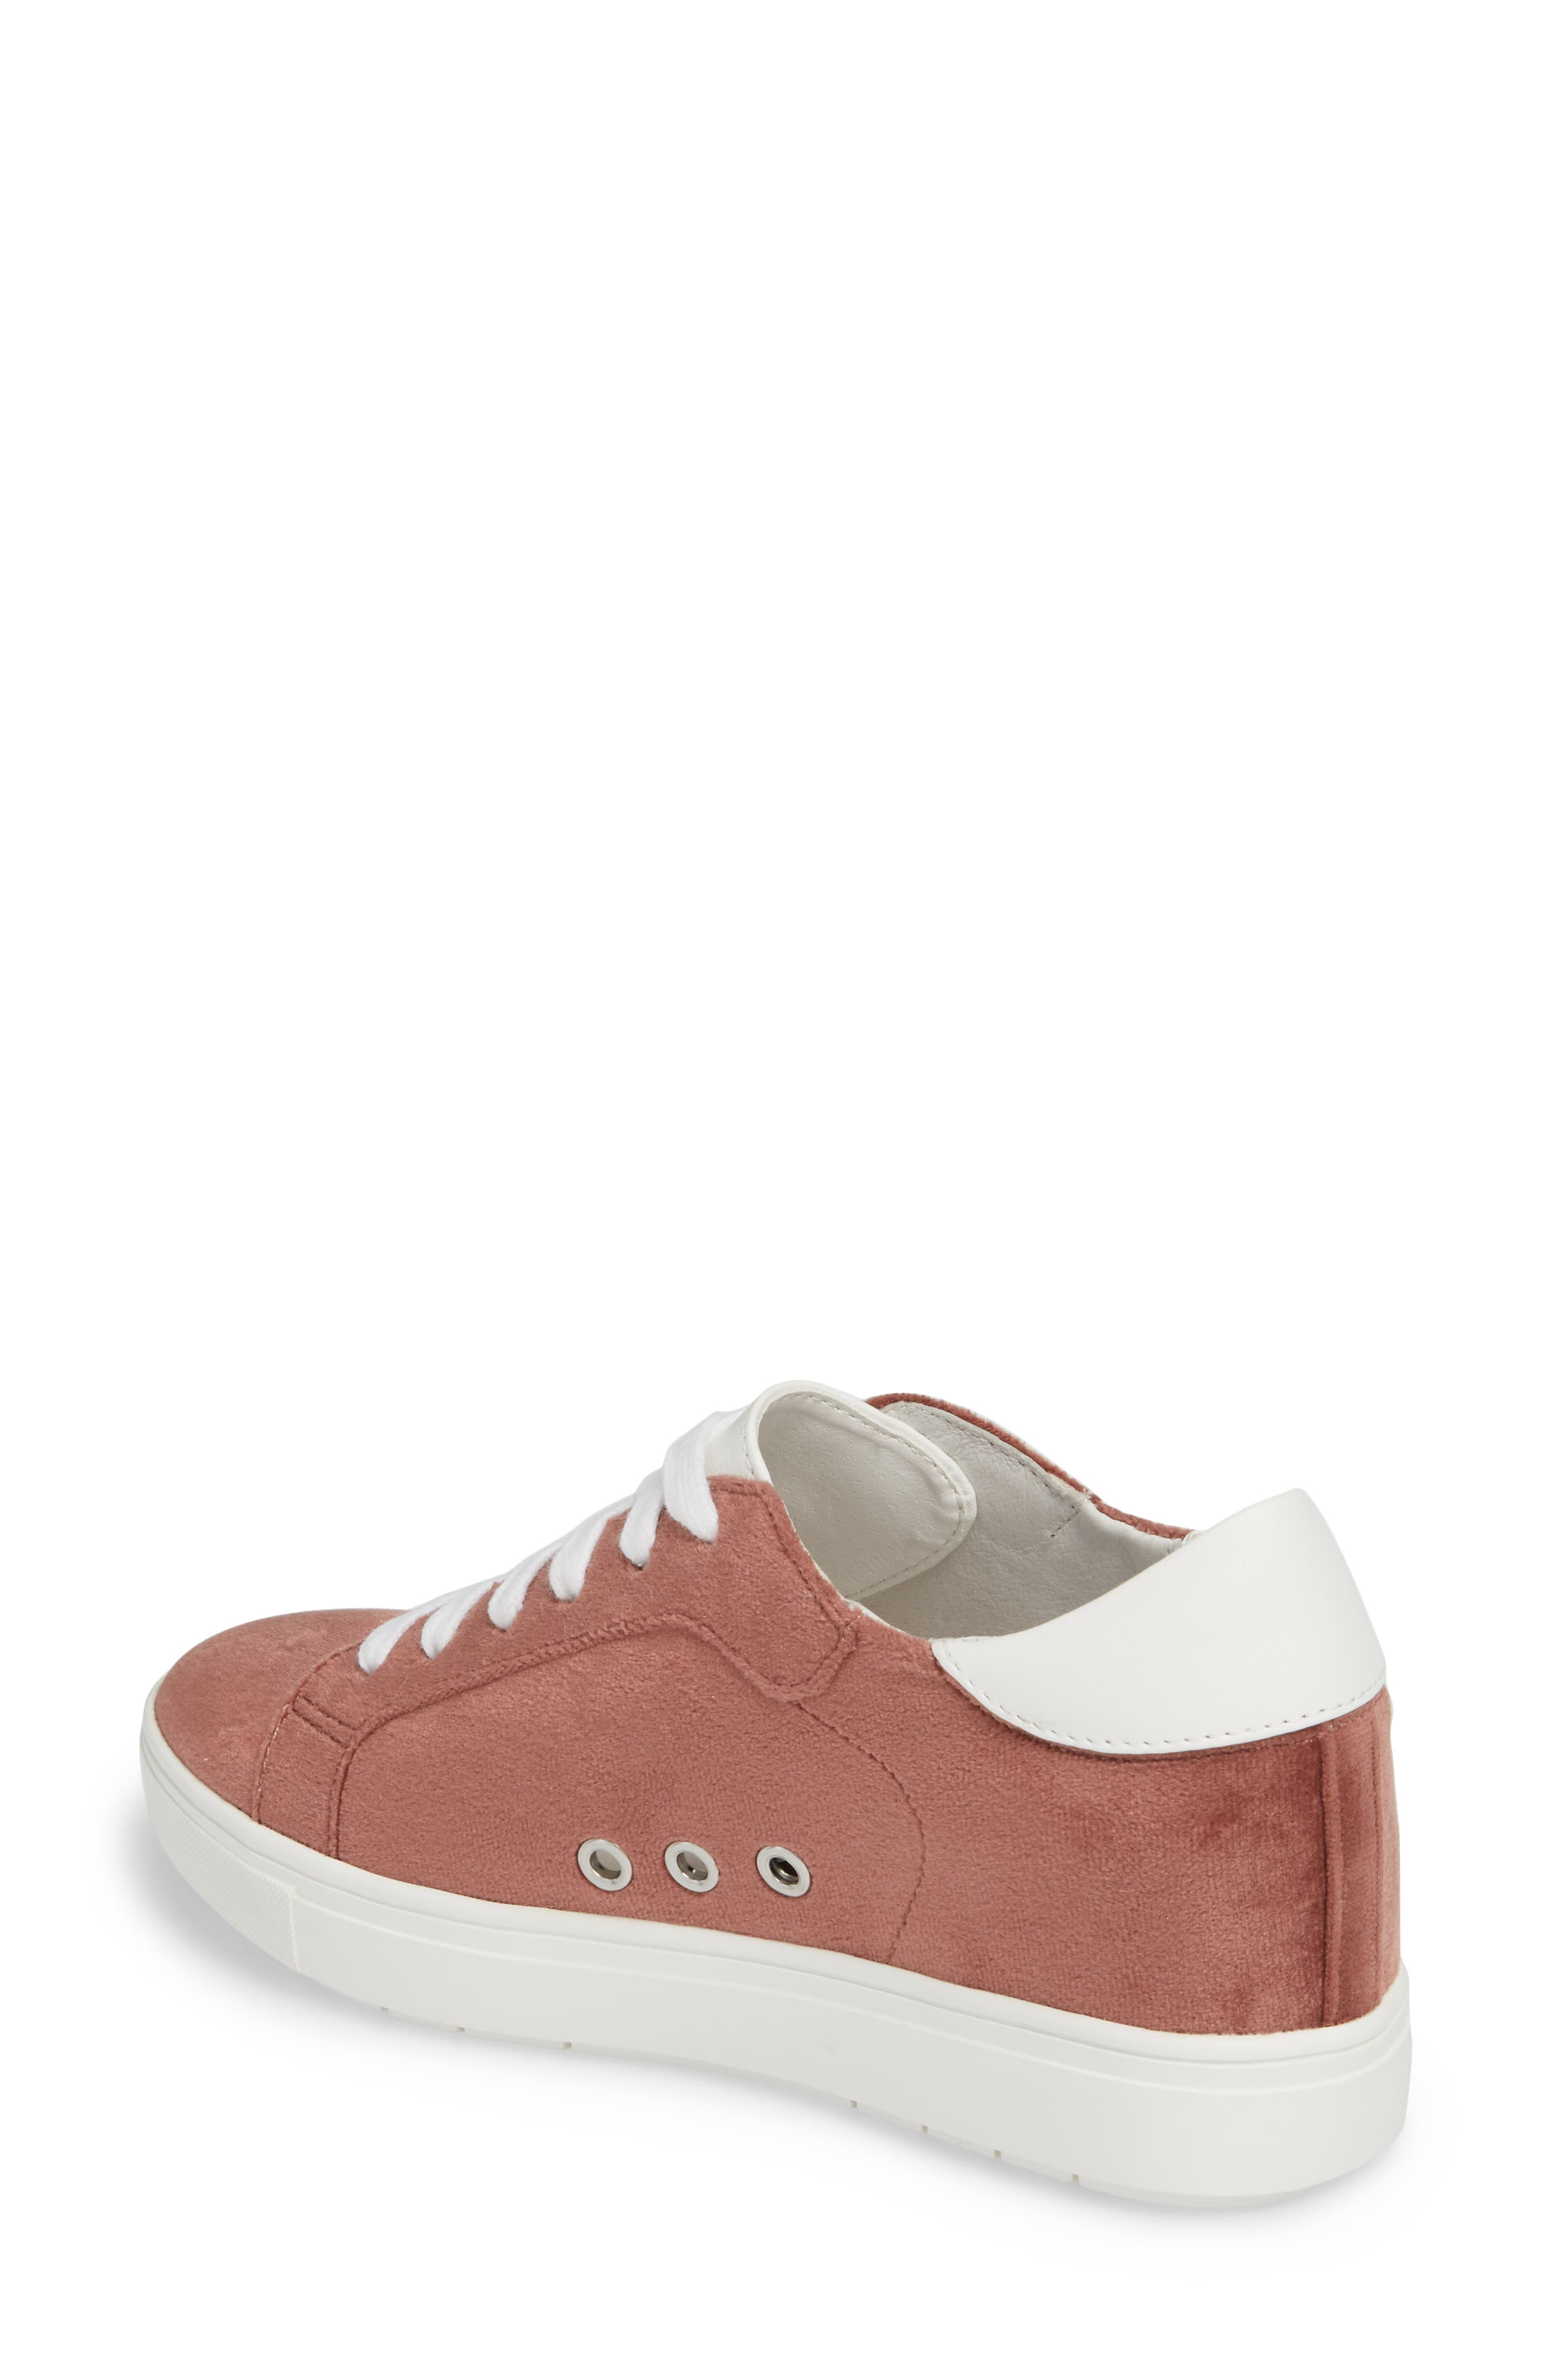 Steal Concealed Wedge Sneaker,                             Alternate thumbnail 8, color,